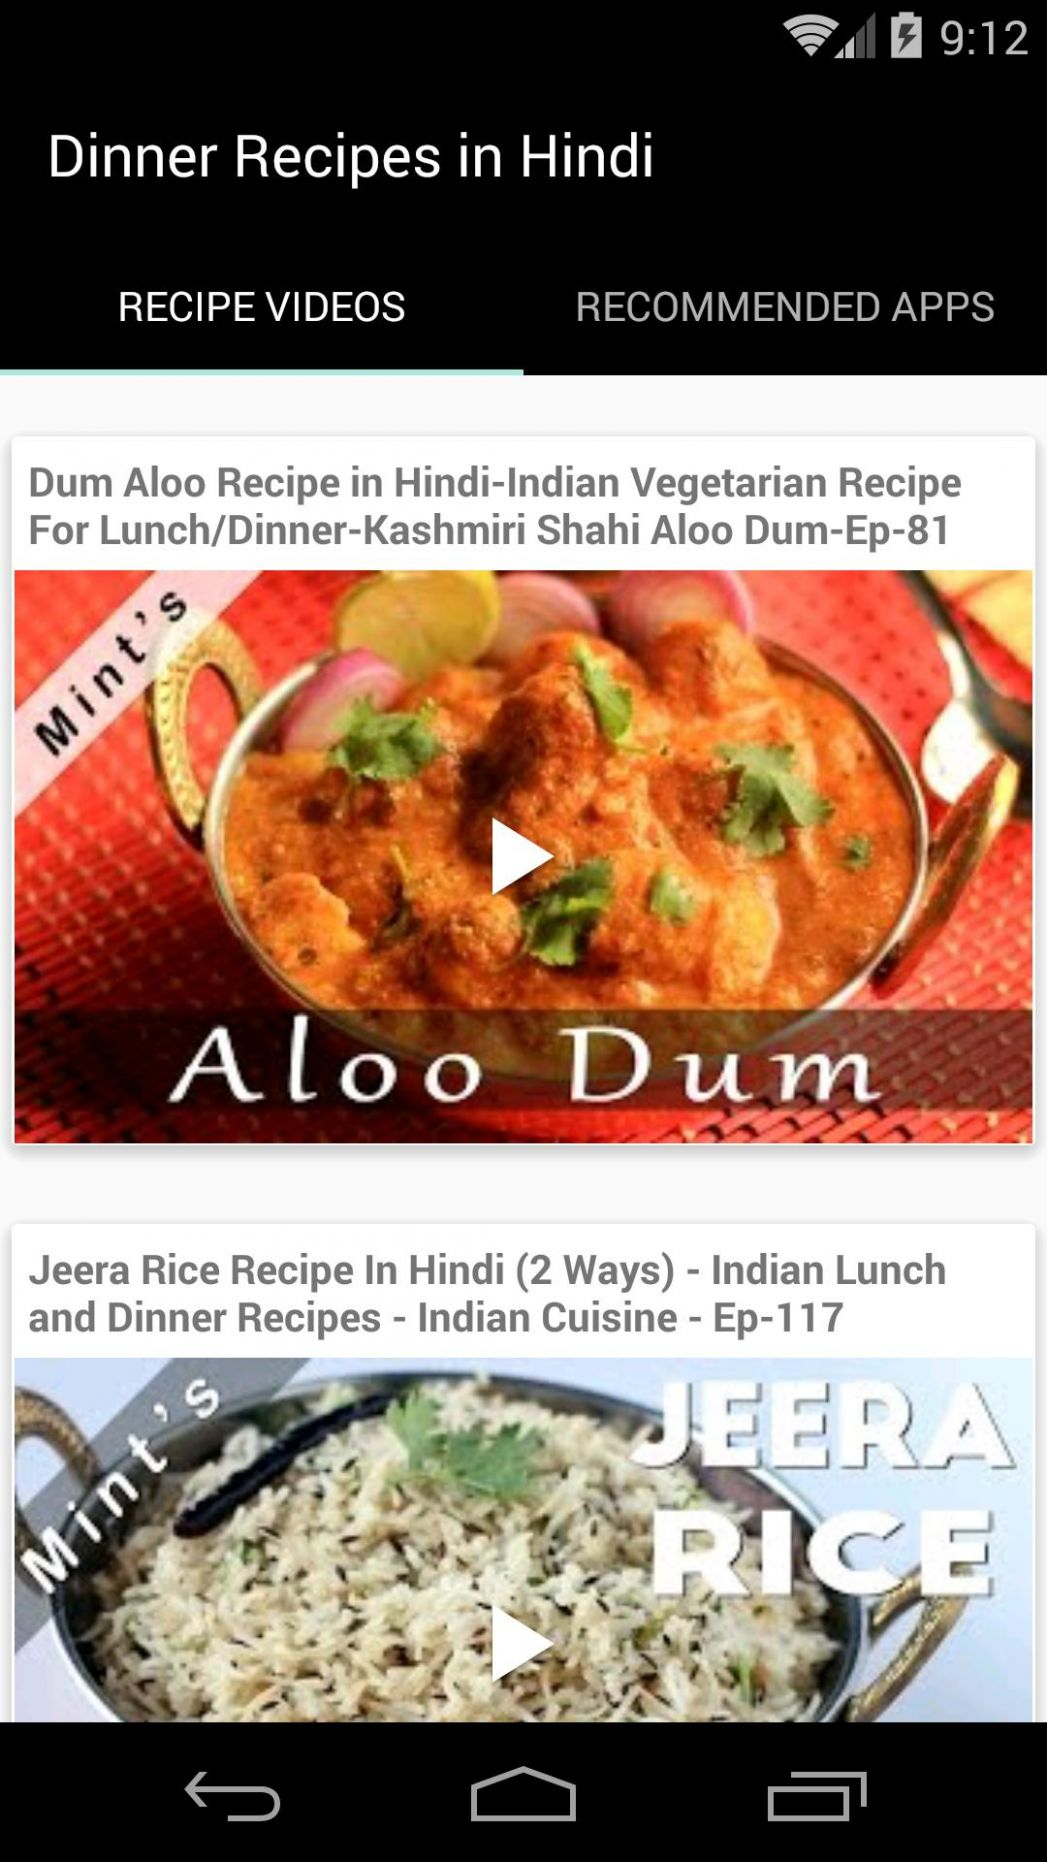 Dinner Recipes in Hindi for Android - APK Download